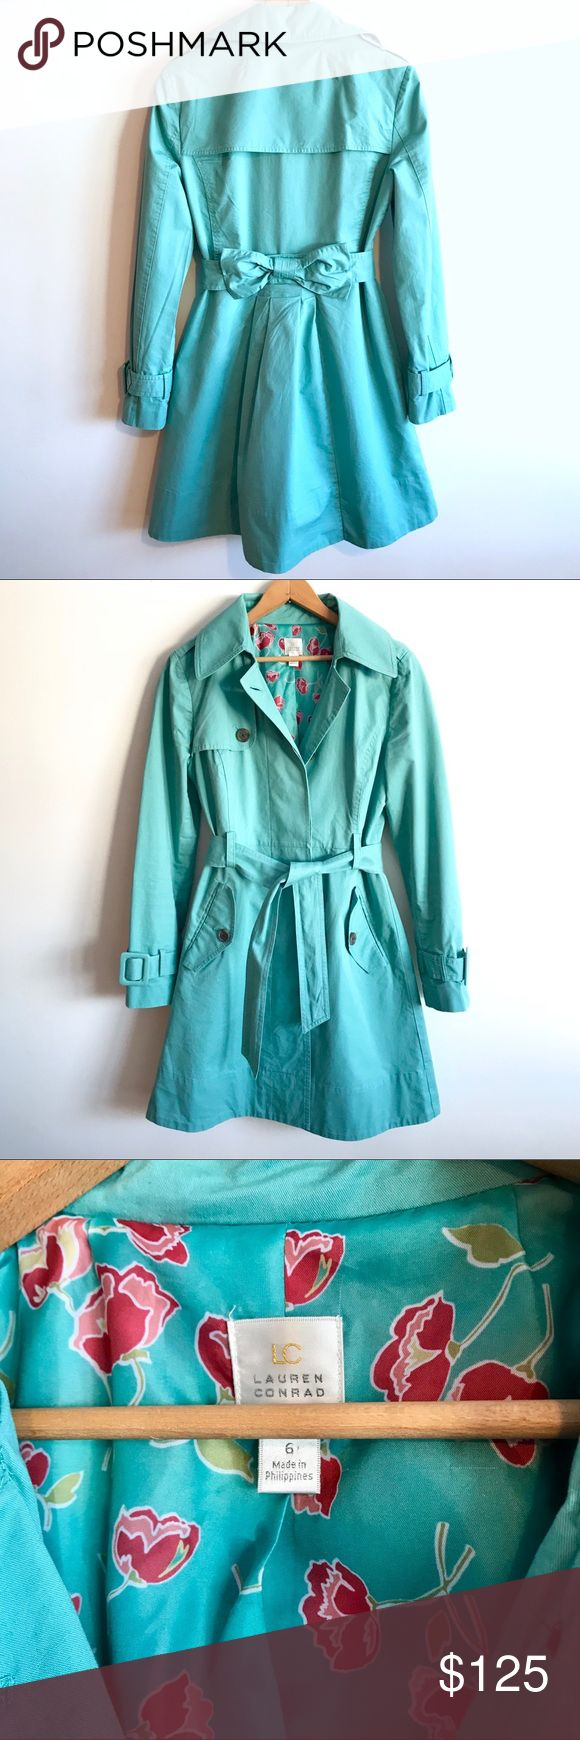 "LC LAUREN CONRAD Teal Trench Coat (6) LC Lauren Conrad Size 6 very gently worn teal trench coat with no flaws - in ""like new"" condition due to the fact that it's truly a statement piece. Concealed front buttons, colorful silk lining and adorable bow on the back. The belt ties in the front, is not removable (bow back is conveniently sewn into coat). Dry clean.  **Pet/Smoke Free Home** **Questions Welcome**  **Price Is Firm On Items $13 & Under** LC Lauren Conrad Jackets & Coats Trench Coats"